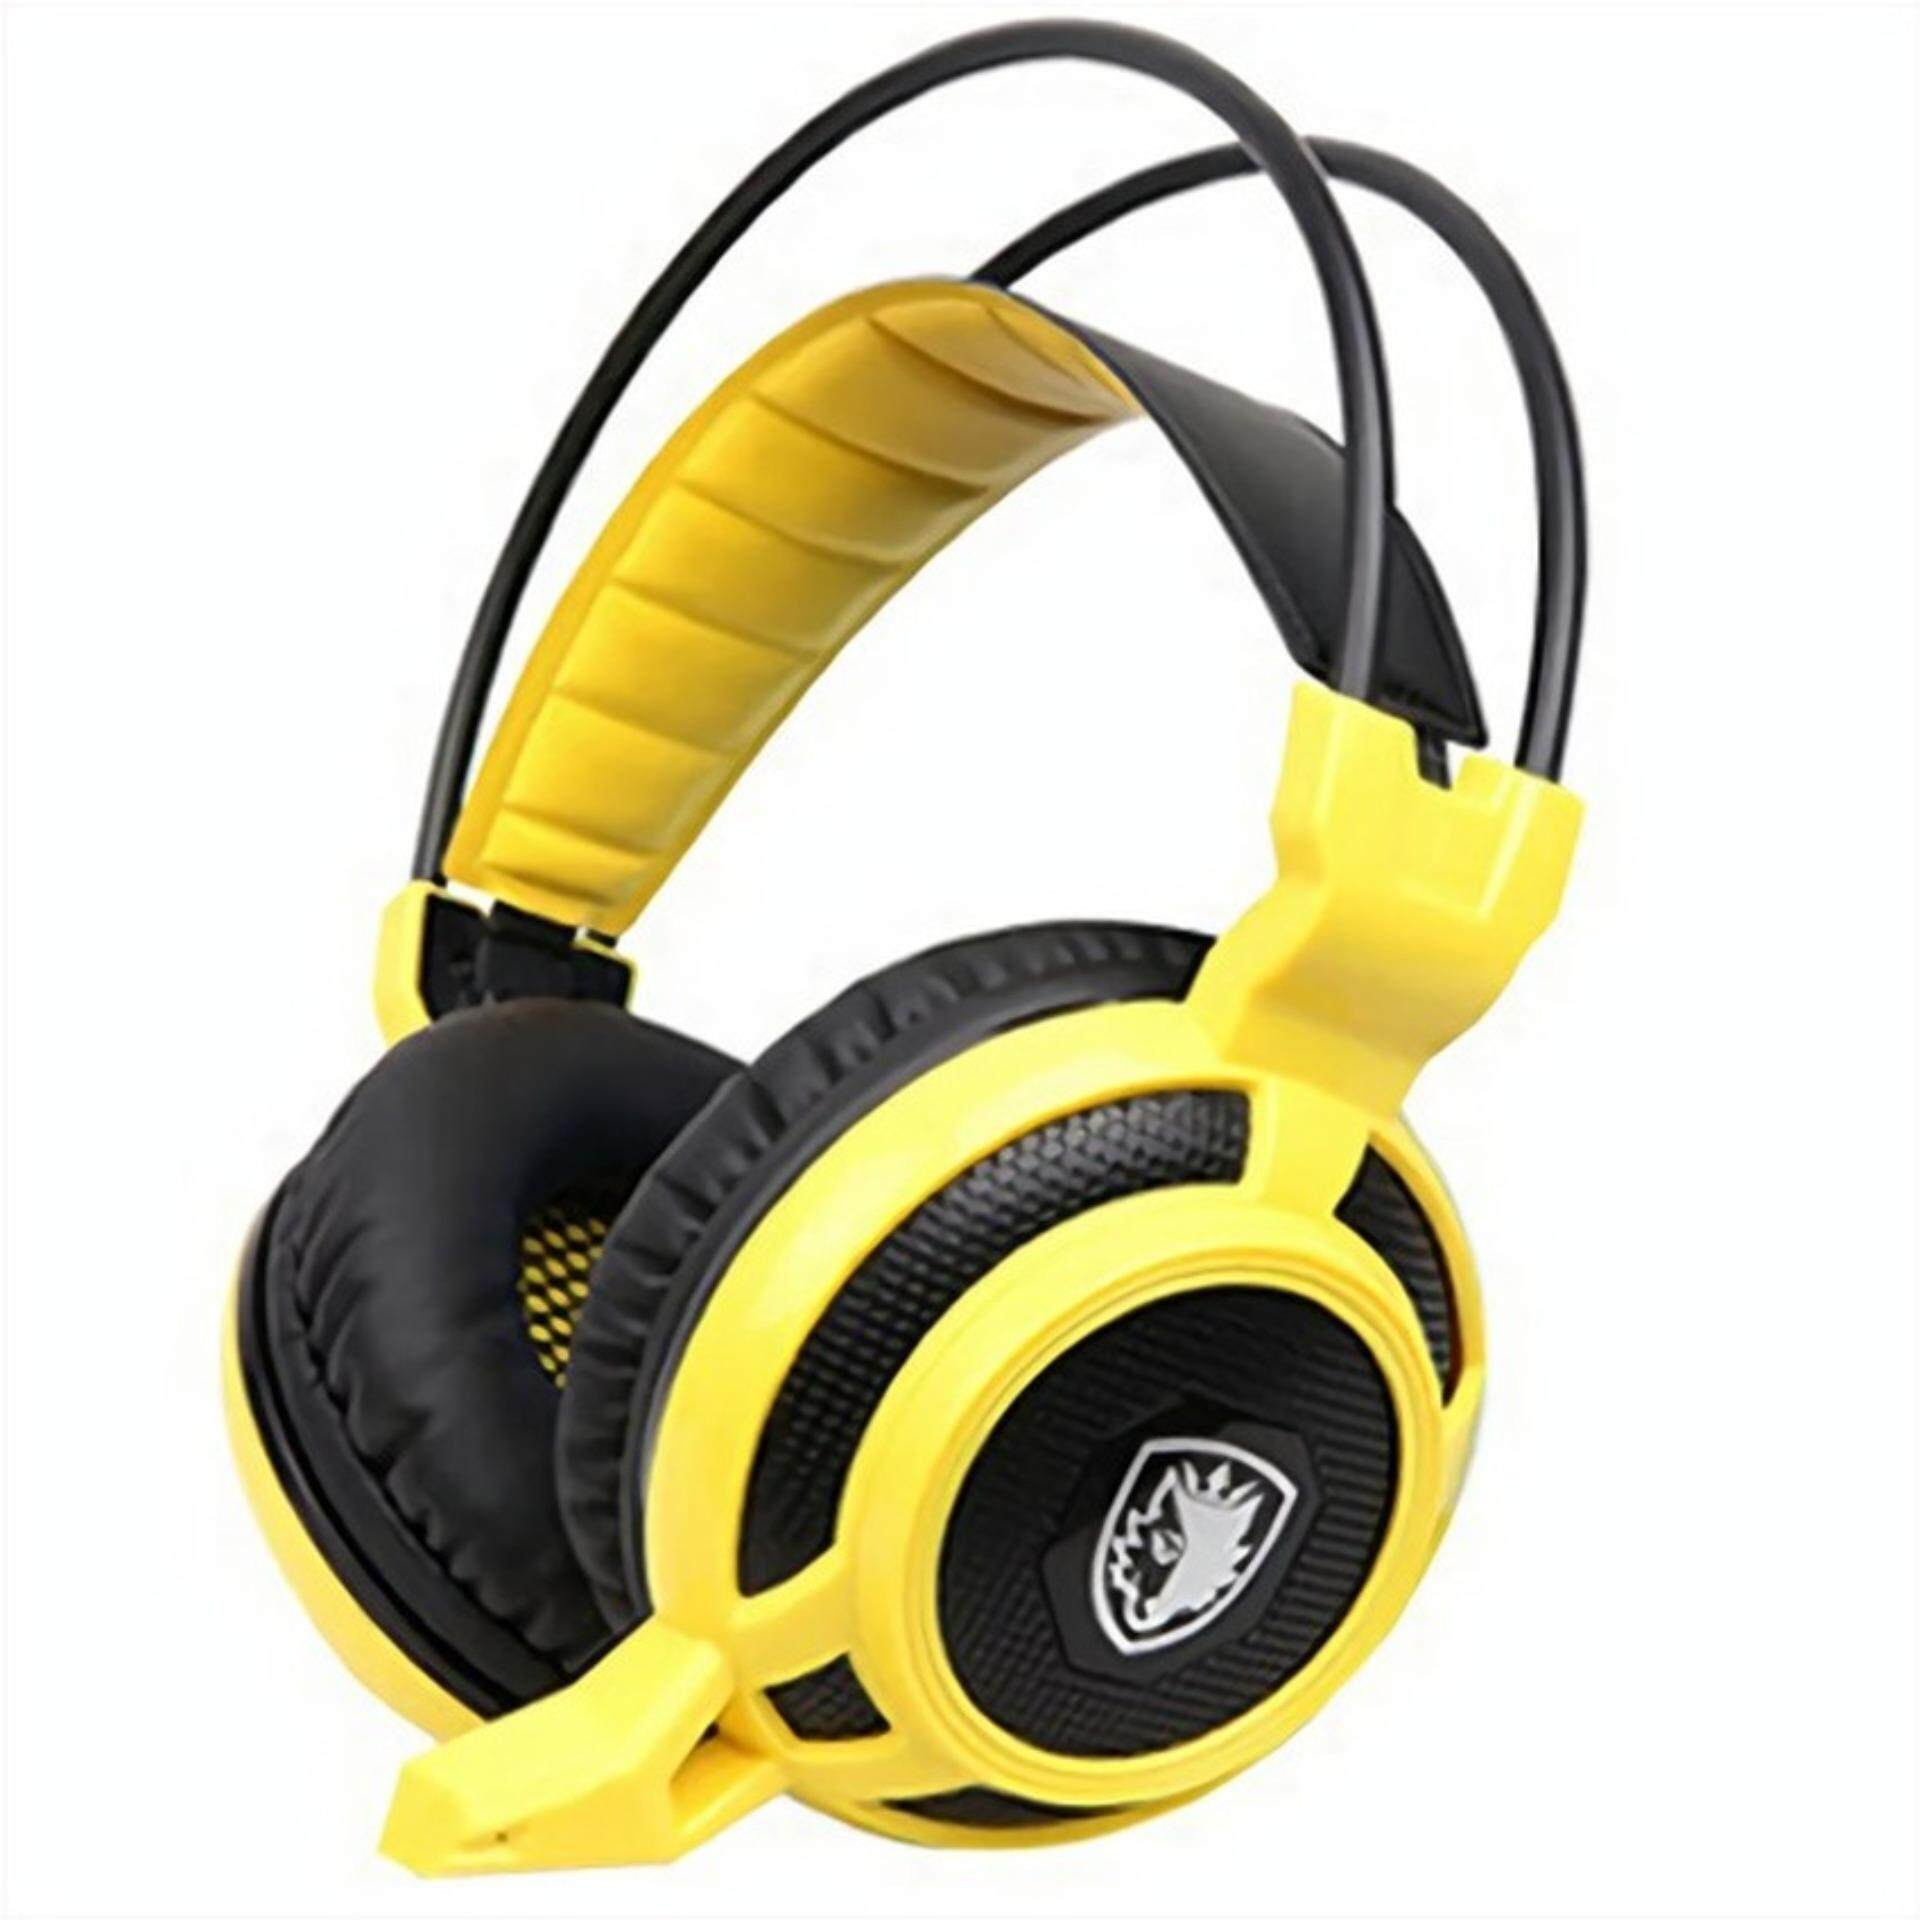 (JM GAMING MALAYSIA)SADES MOYU YELLOW Arcmage 3.5mm PC Gaming  Headset Headphones with Microphone Volume Control Noise Canceling  LED light for PC/Notebook/Laptop(YELLOW)